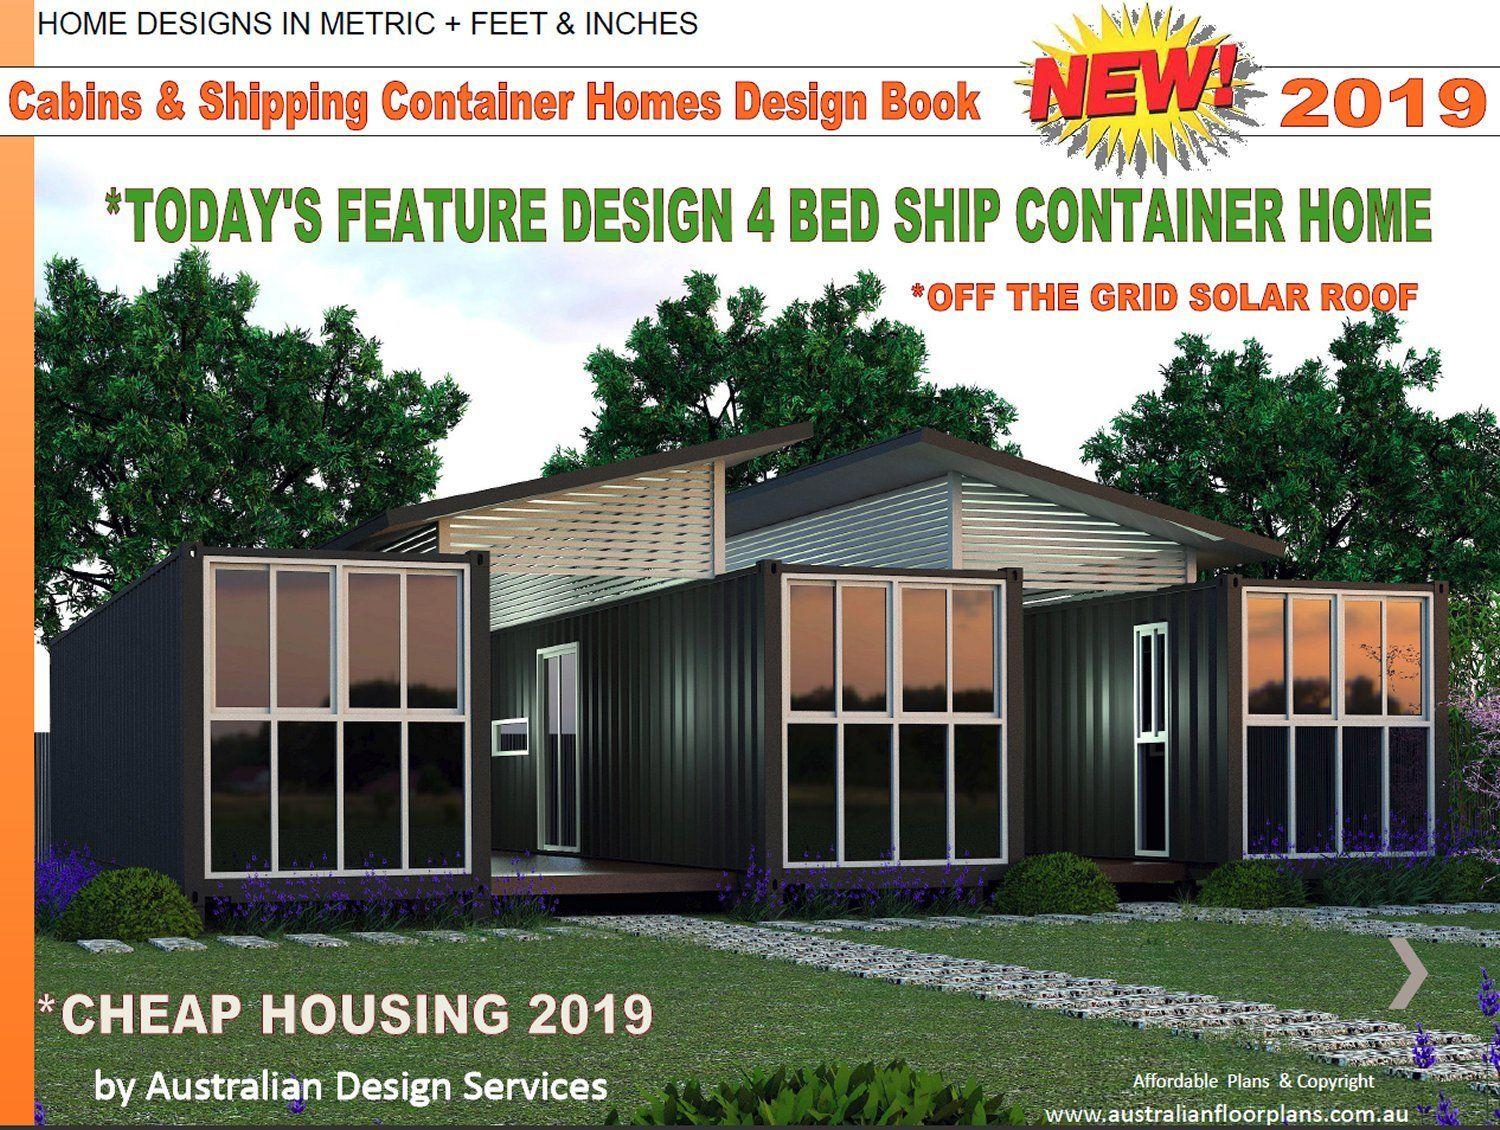 Shipping Container House Plan Book Small Houses Cabins Etsy Shipping Container Home Designs Container House Plans Shipping Container House Plans